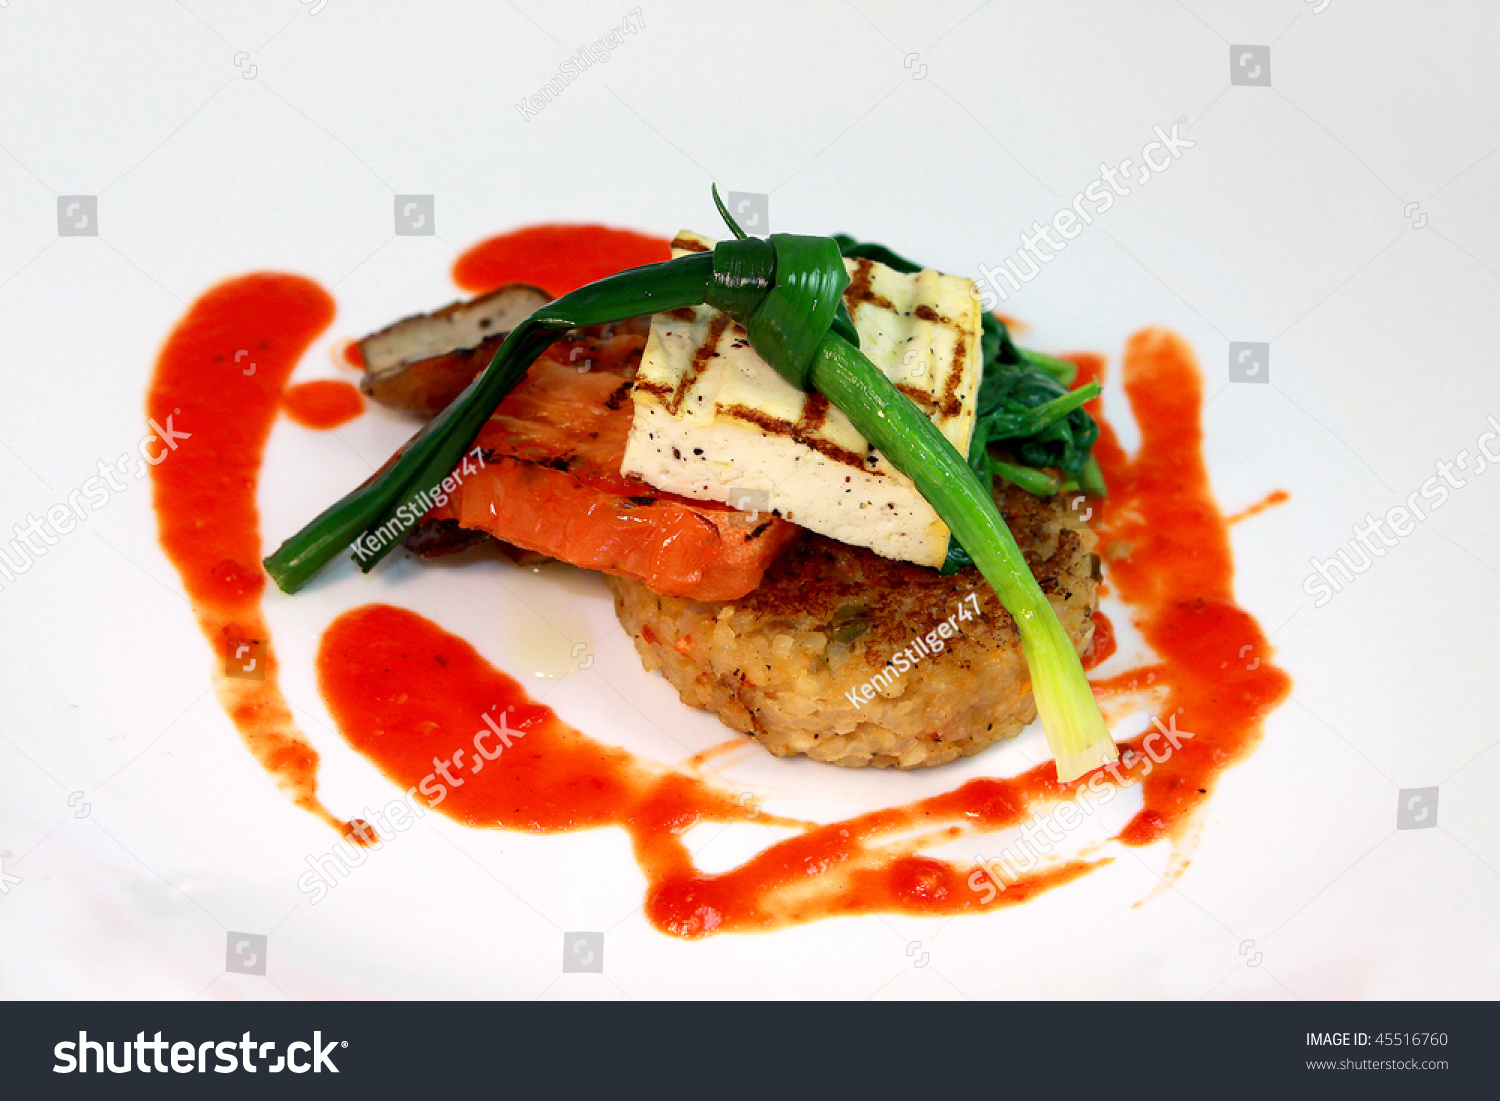 Vegetarian Meals At A Fine Dining ResturantFine Dining Vegetarian Dishes   josephbounassar com. Fine Dining Vegetarian Dishes. Home Design Ideas